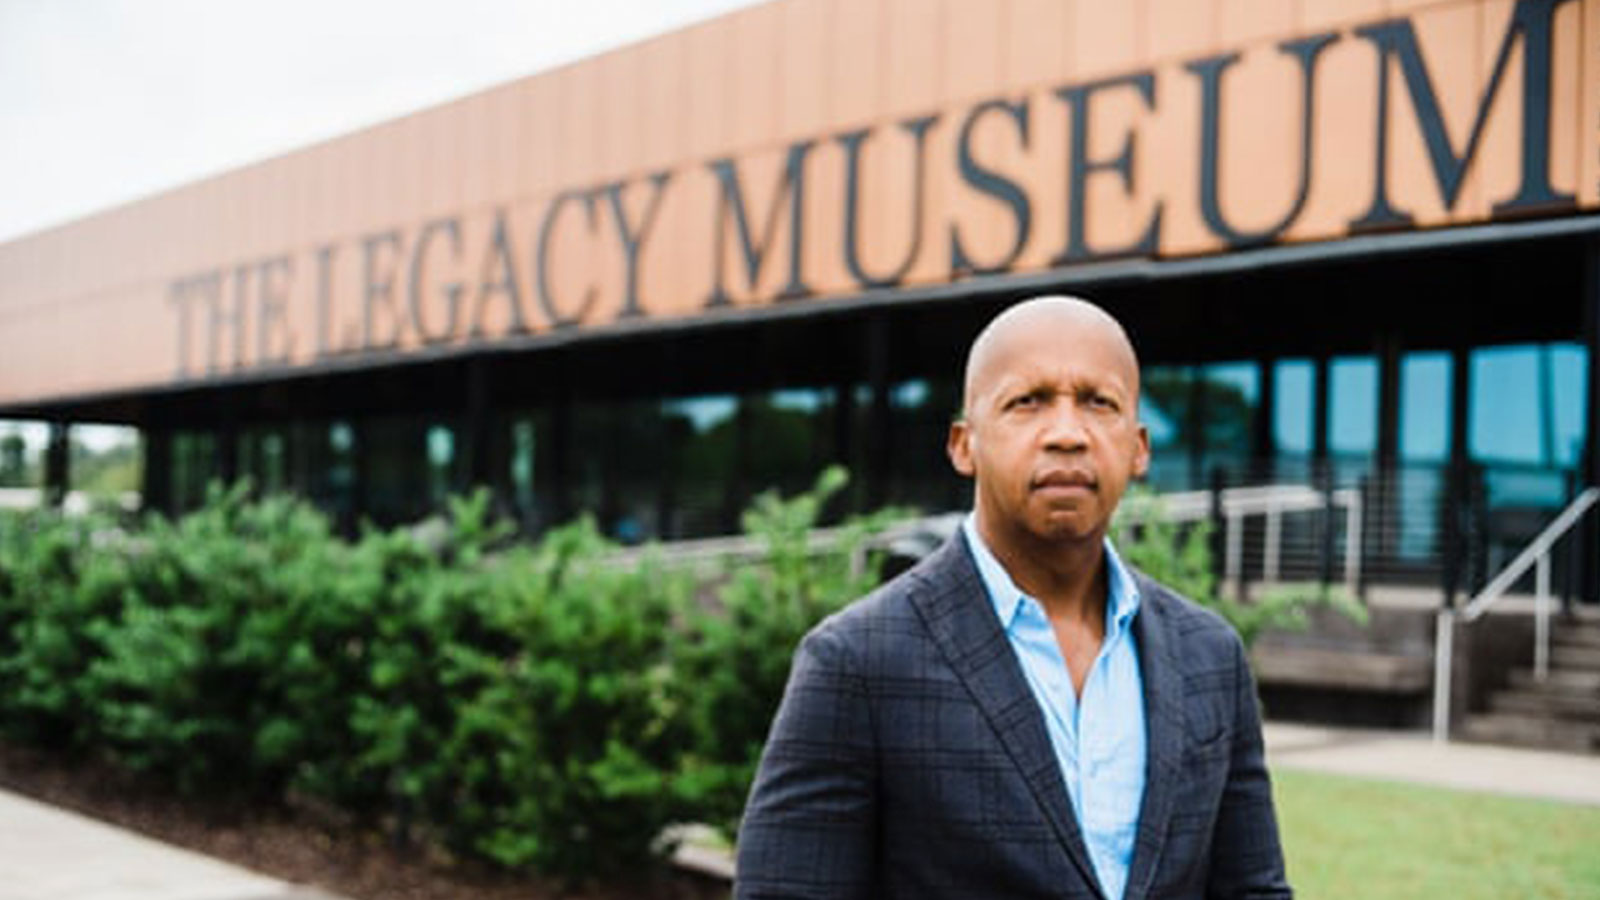 Bryan Stevenson, founder and executive director of the Equal Justice Initiative, stands outside The Legacy Museum.